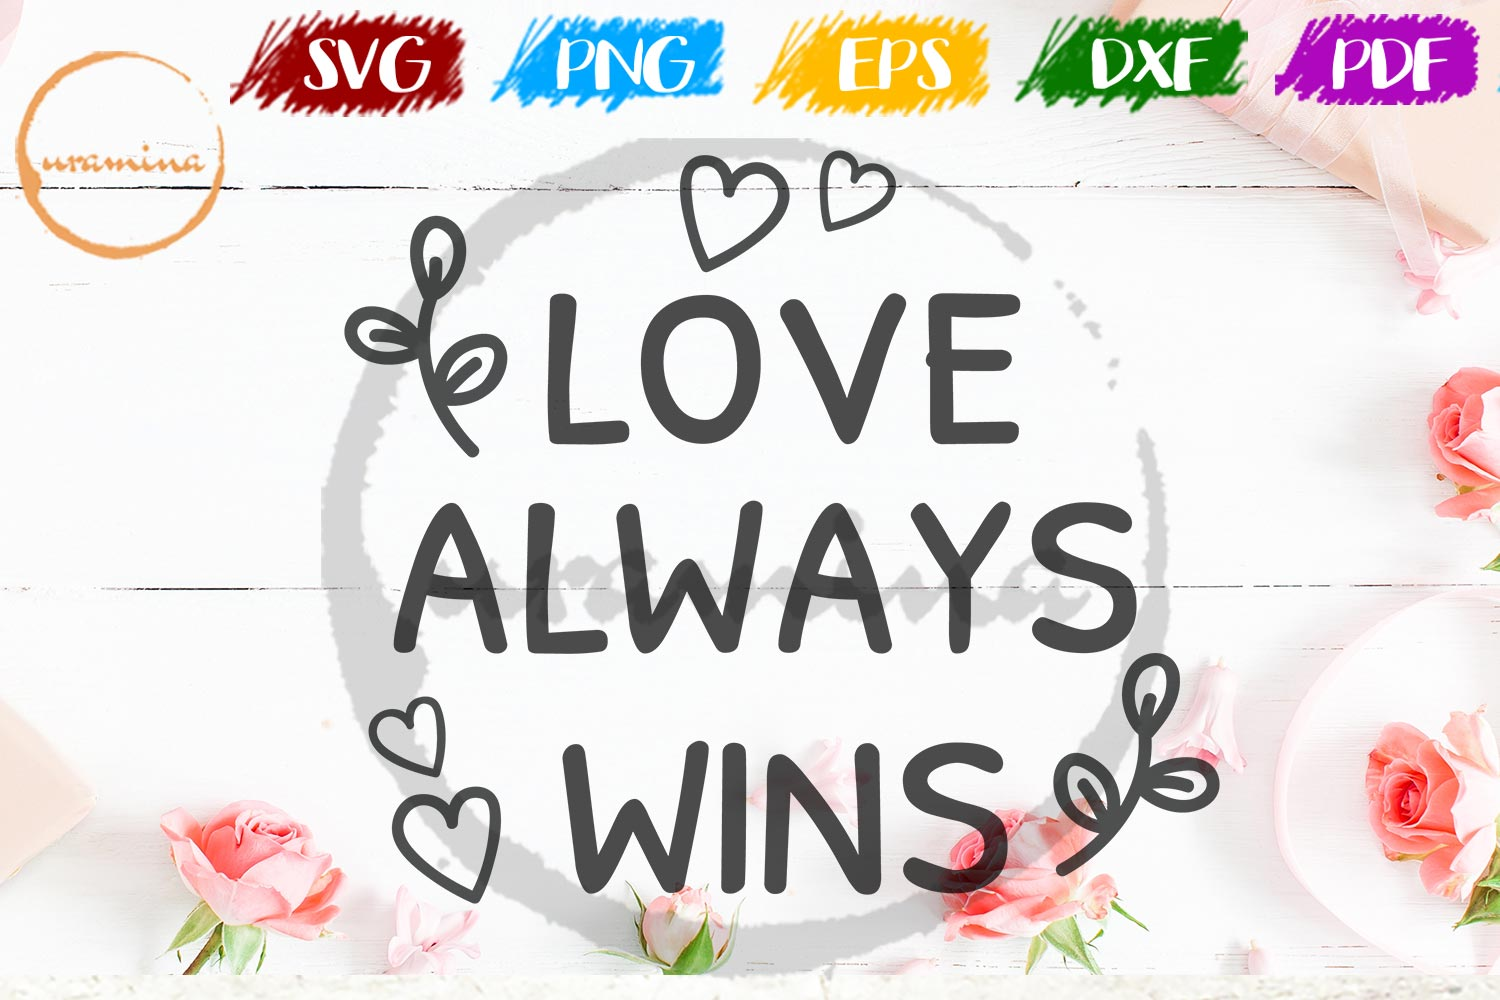 Download Free Love Always Wins Graphic By Uramina Creative Fabrica for Cricut Explore, Silhouette and other cutting machines.